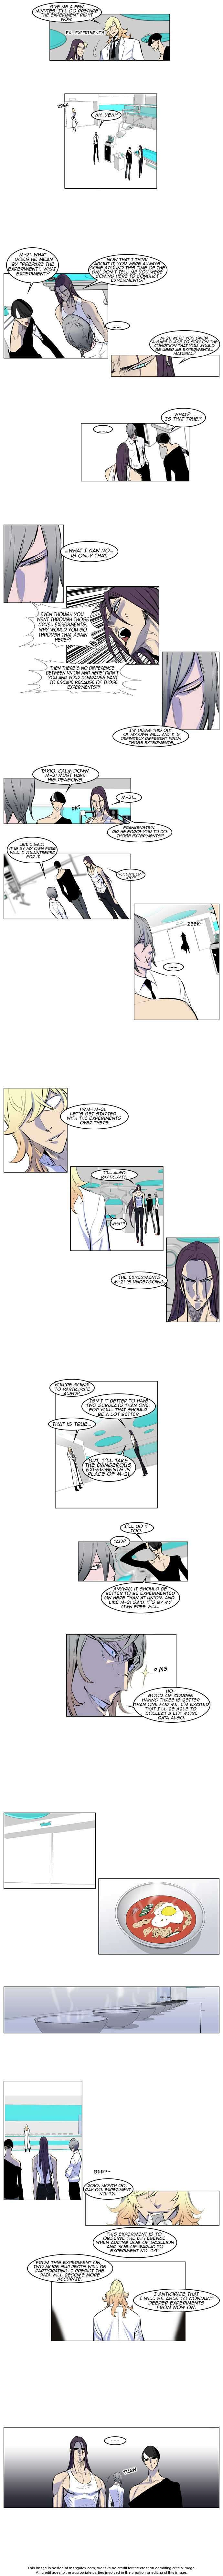 Noblesse 154 Page 2